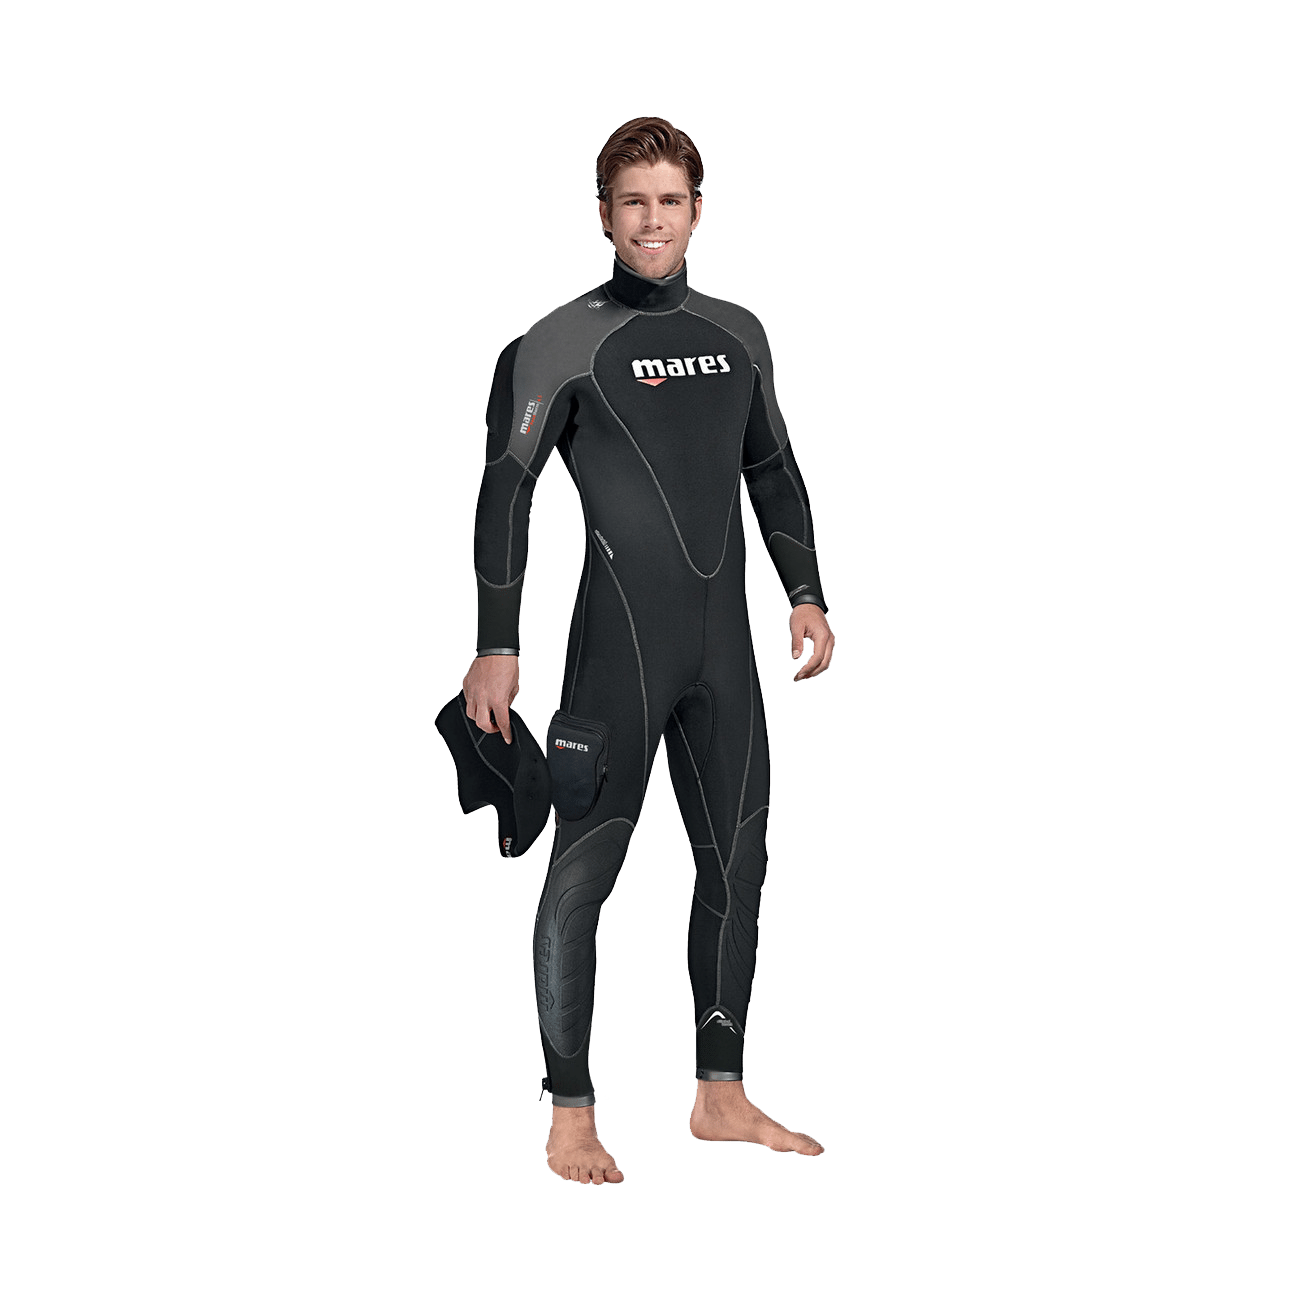 Mares Flexa Therm Wetsuit | Mares Wetsuits | Mares Singapore